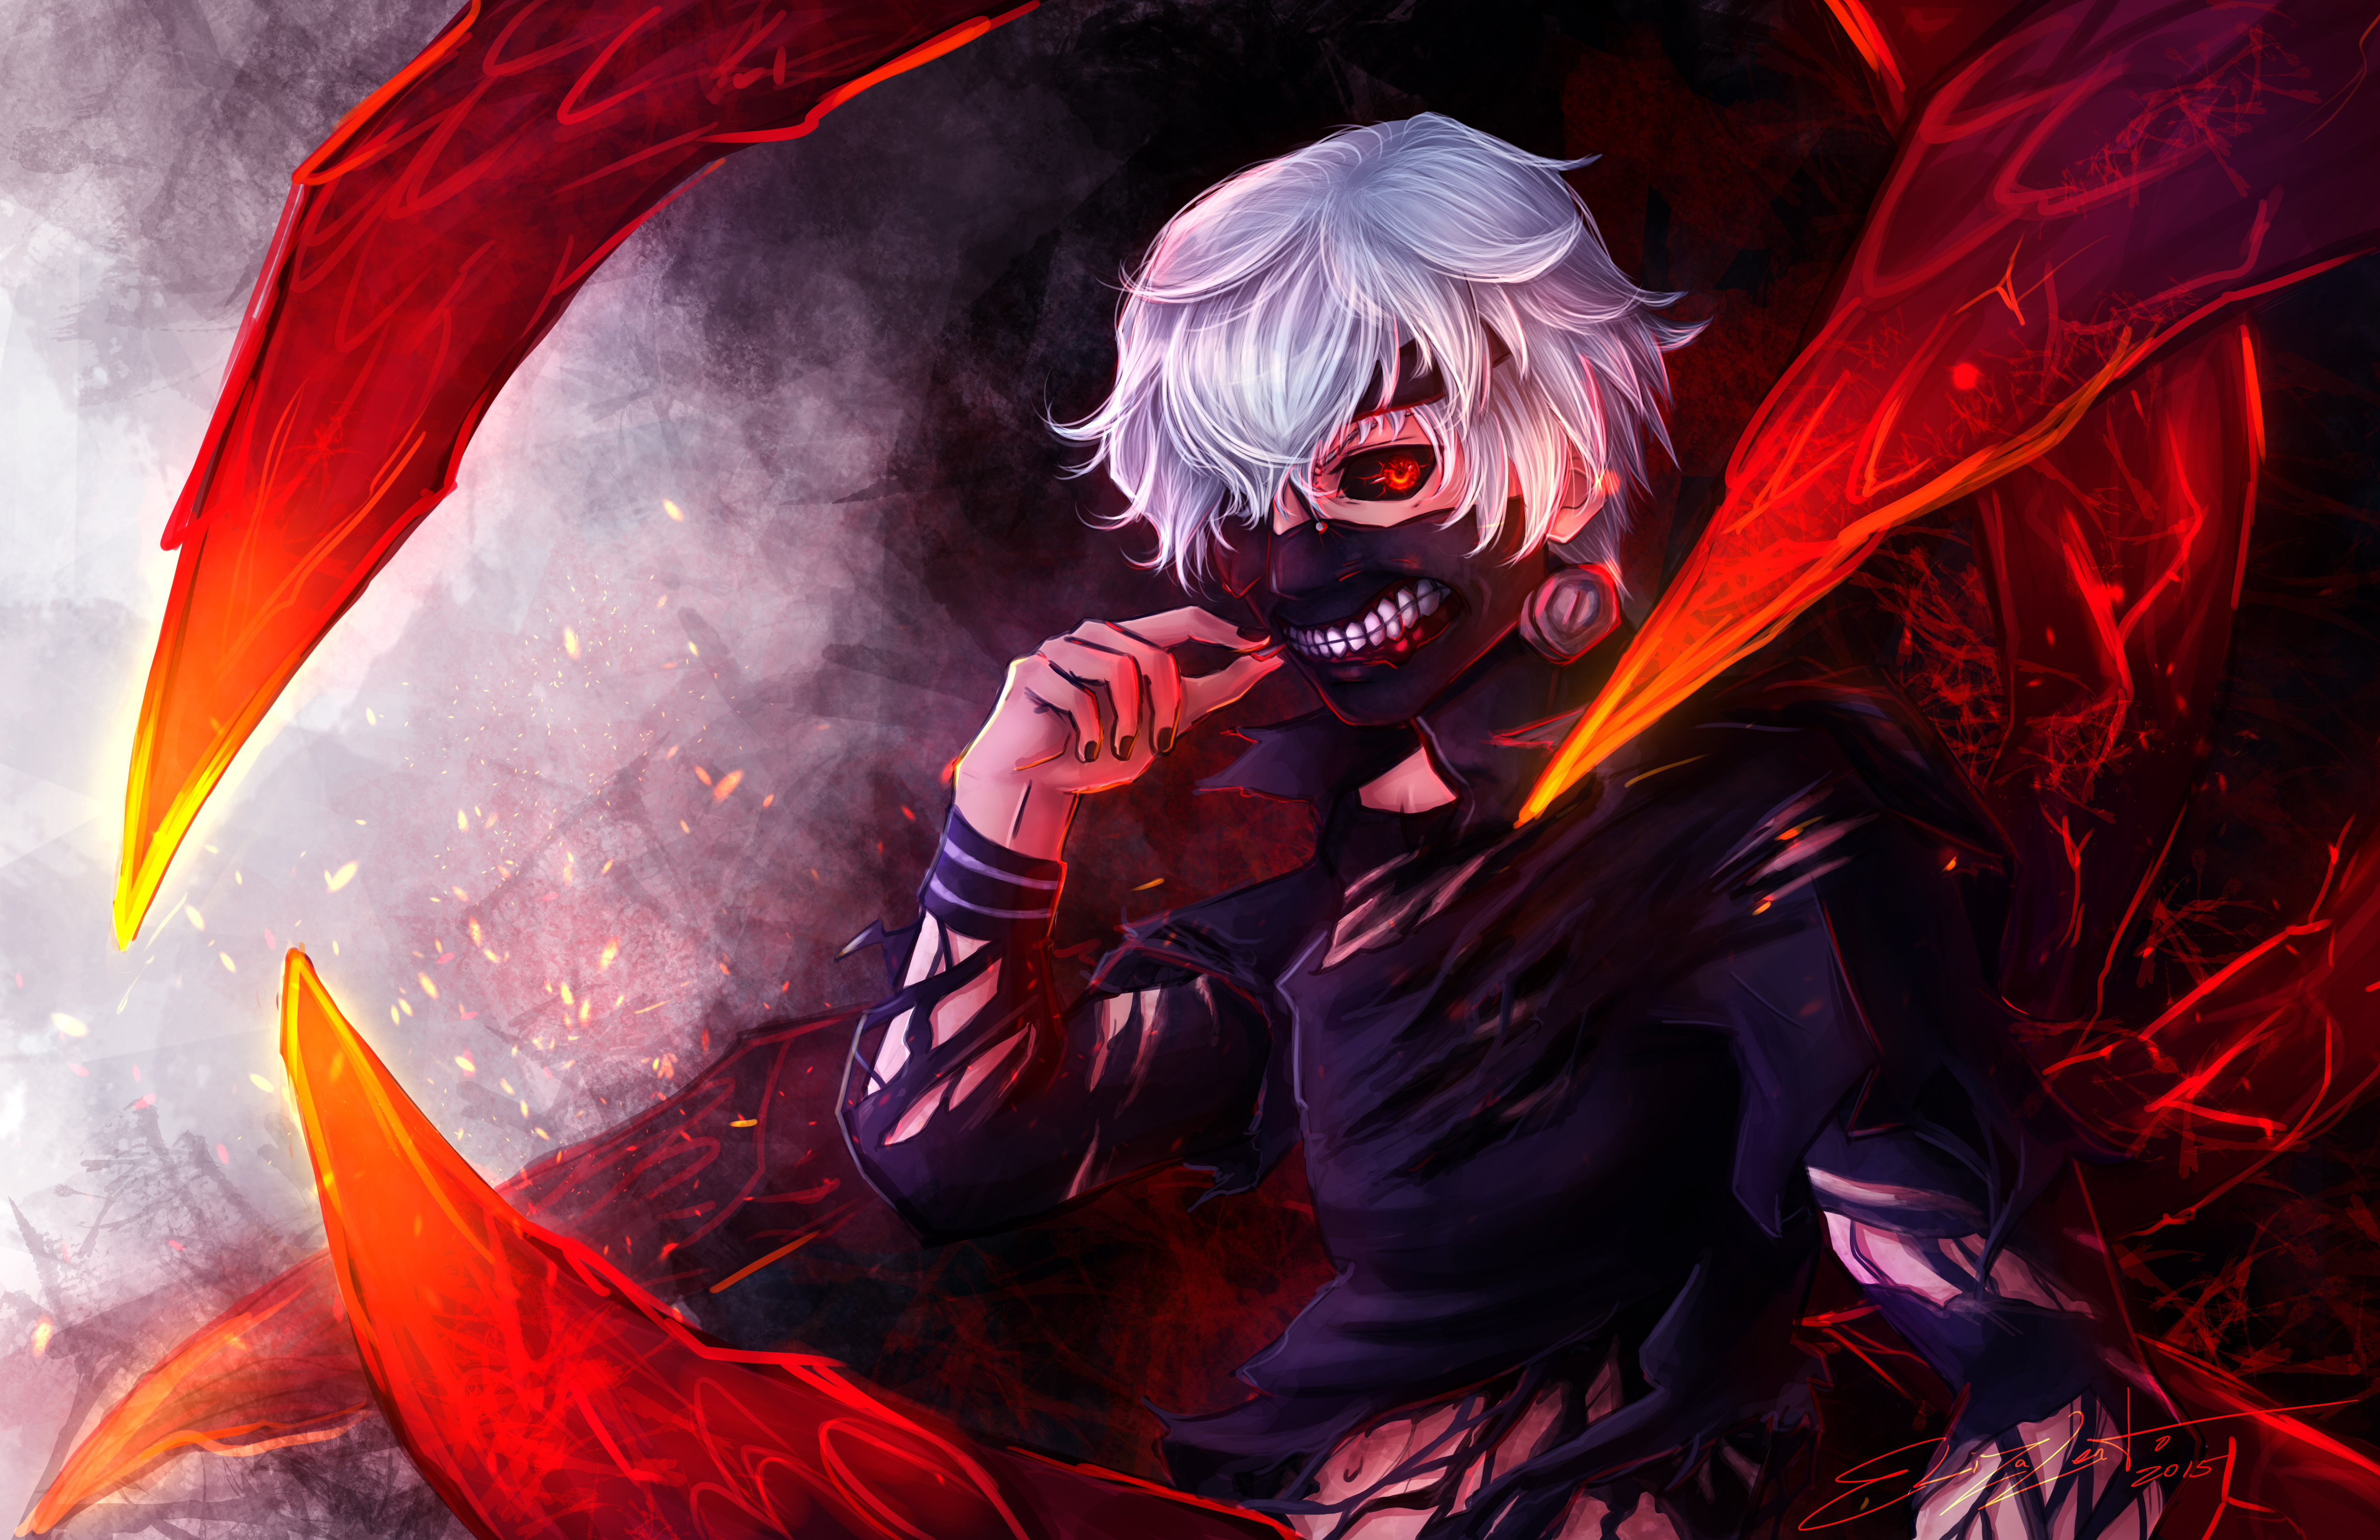 Ken kaneki tokyo ghoul 5k hd anime 4k wallpapers images - 5k anime wallpaper ...